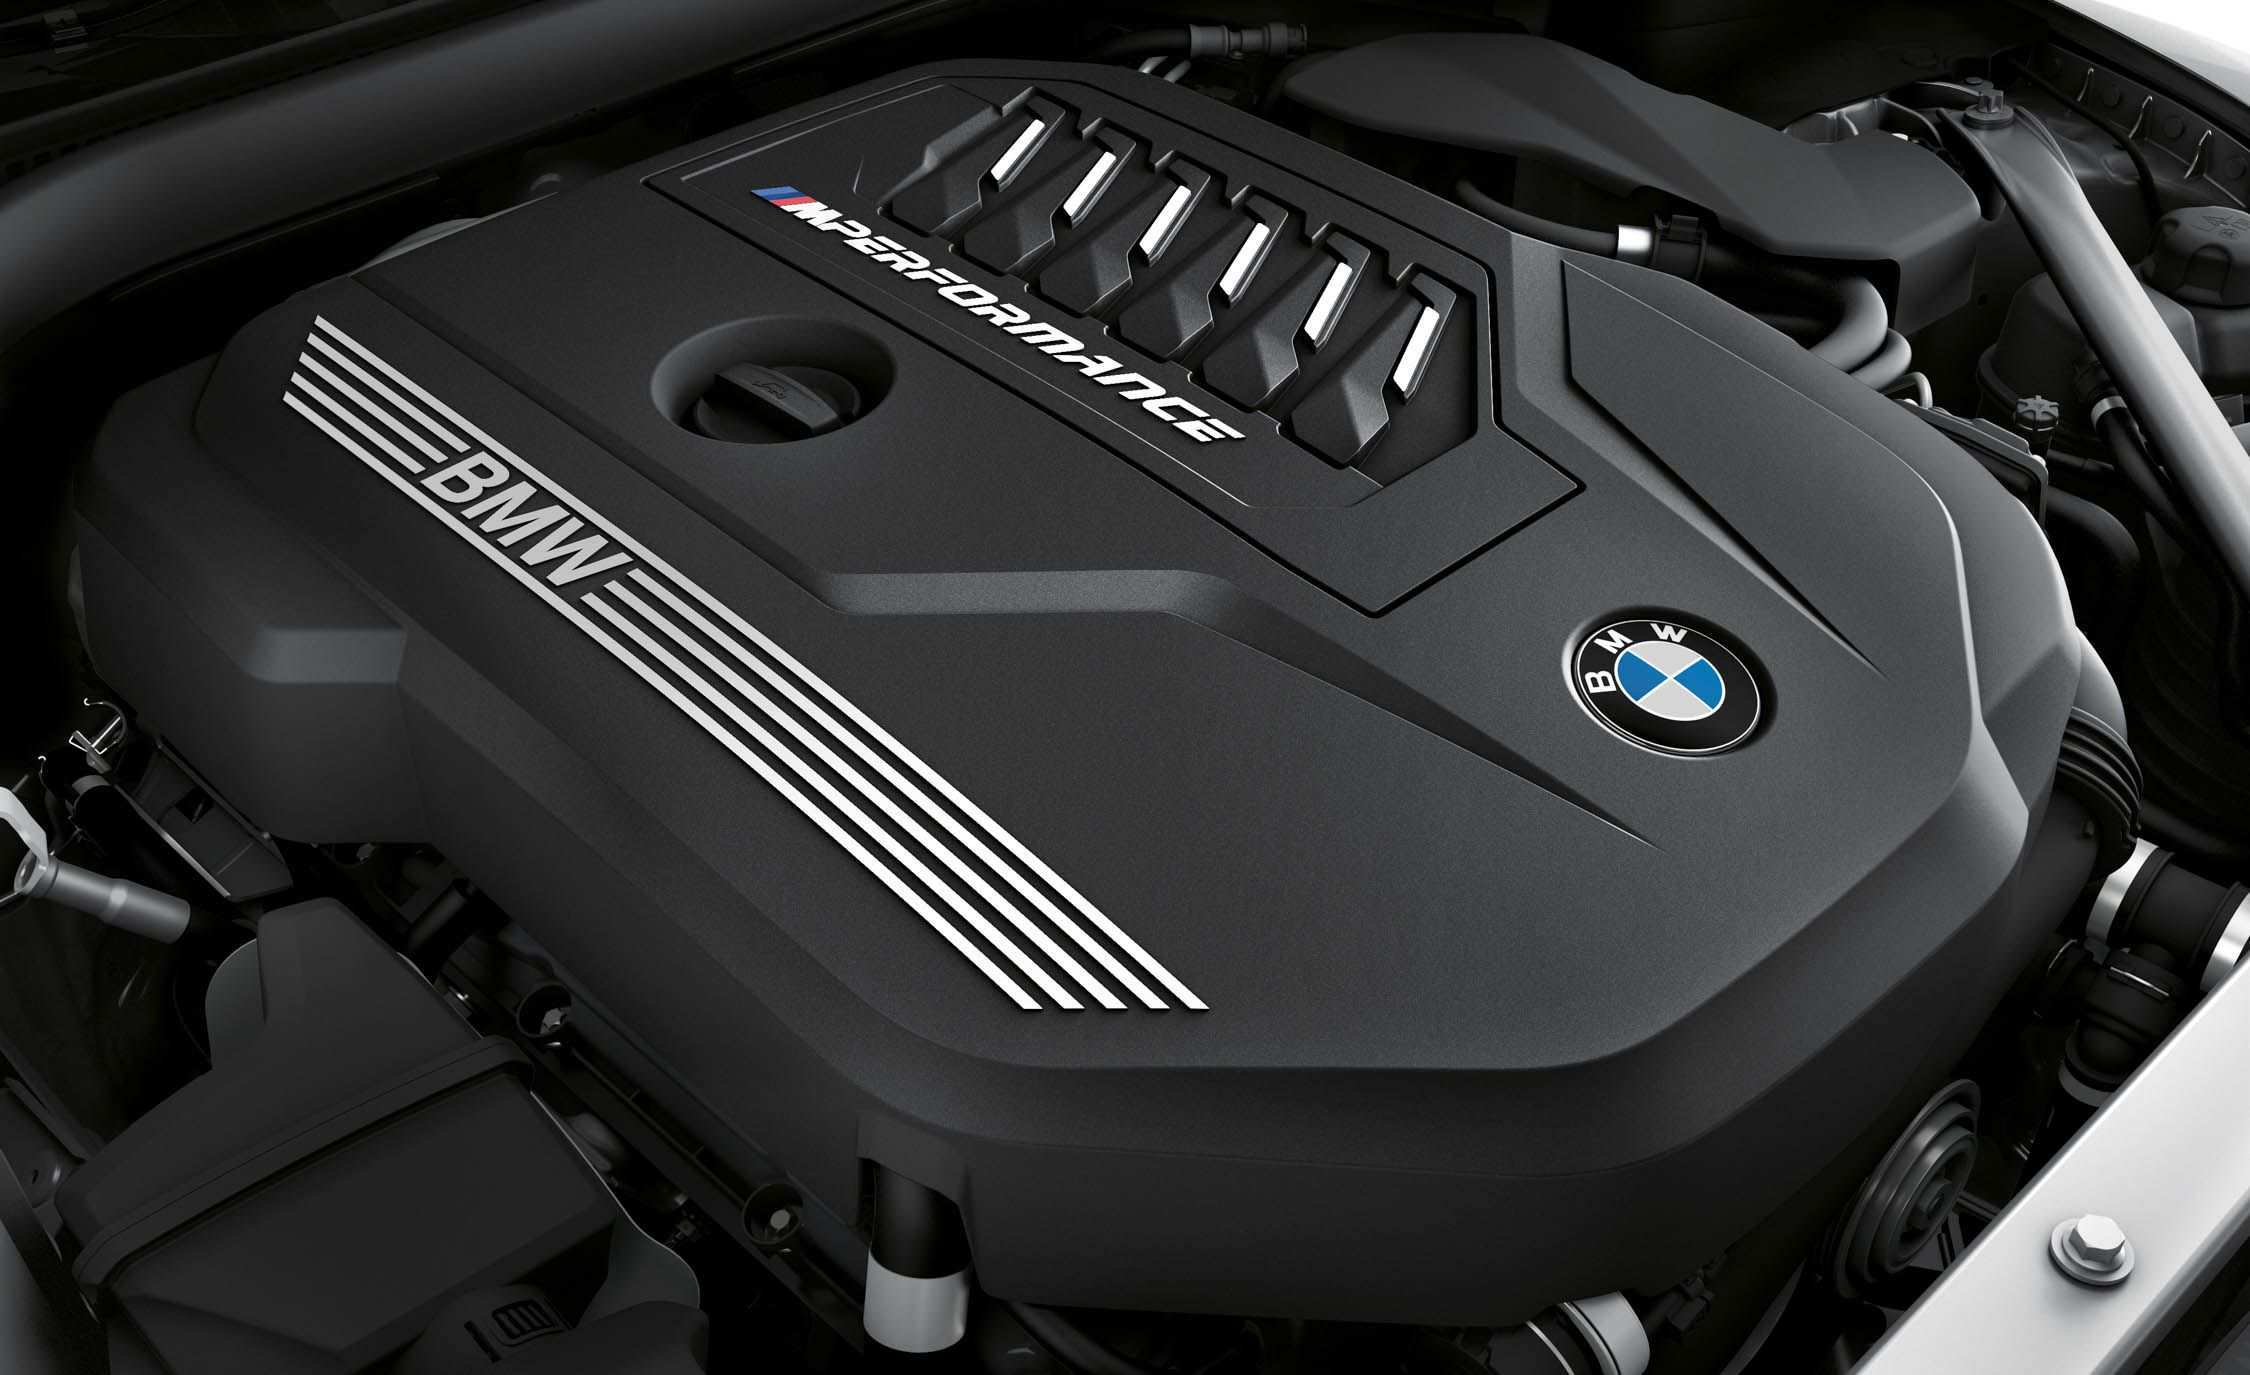 64 Great 2020 Bmw Engines Prices by 2020 Bmw Engines